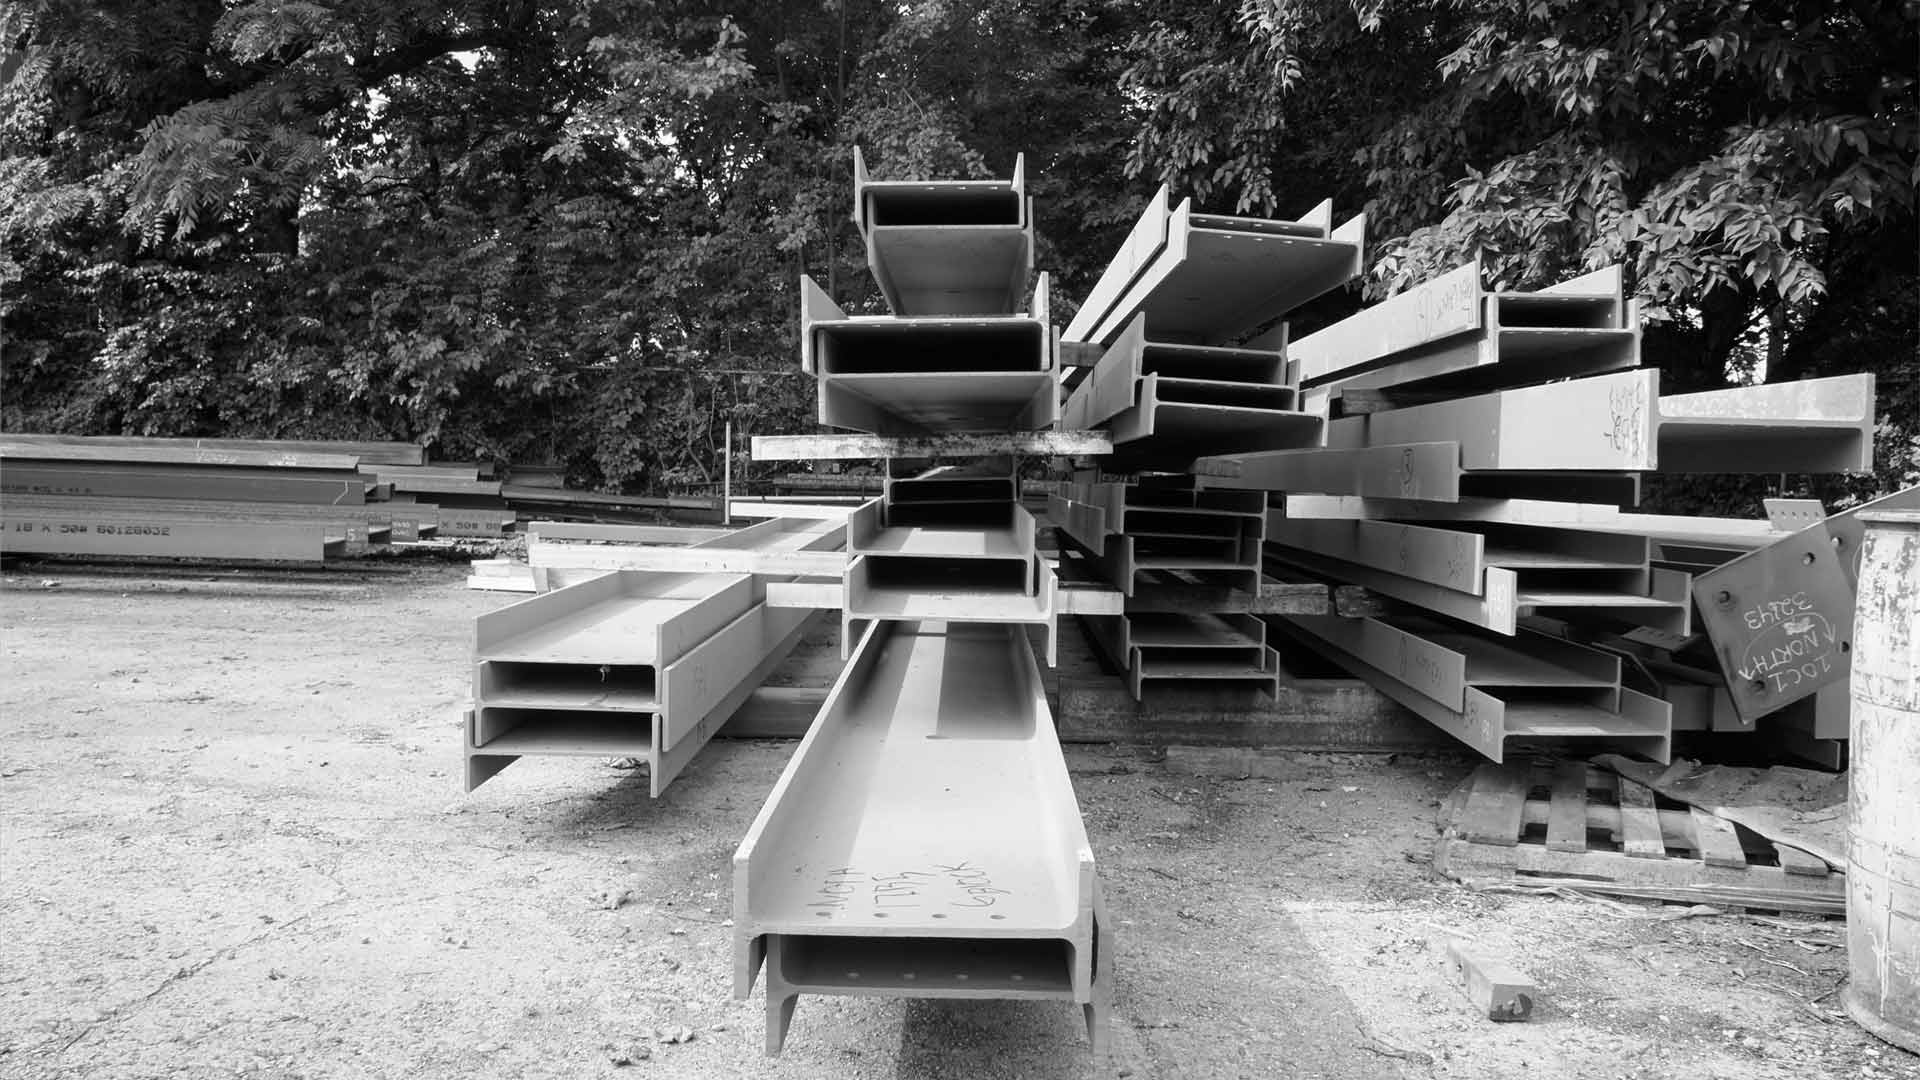 Structural Steel Ready for Site Delivery (Steel Yard) - Broad Ripple North Village - Urban Infill - Indianapolis